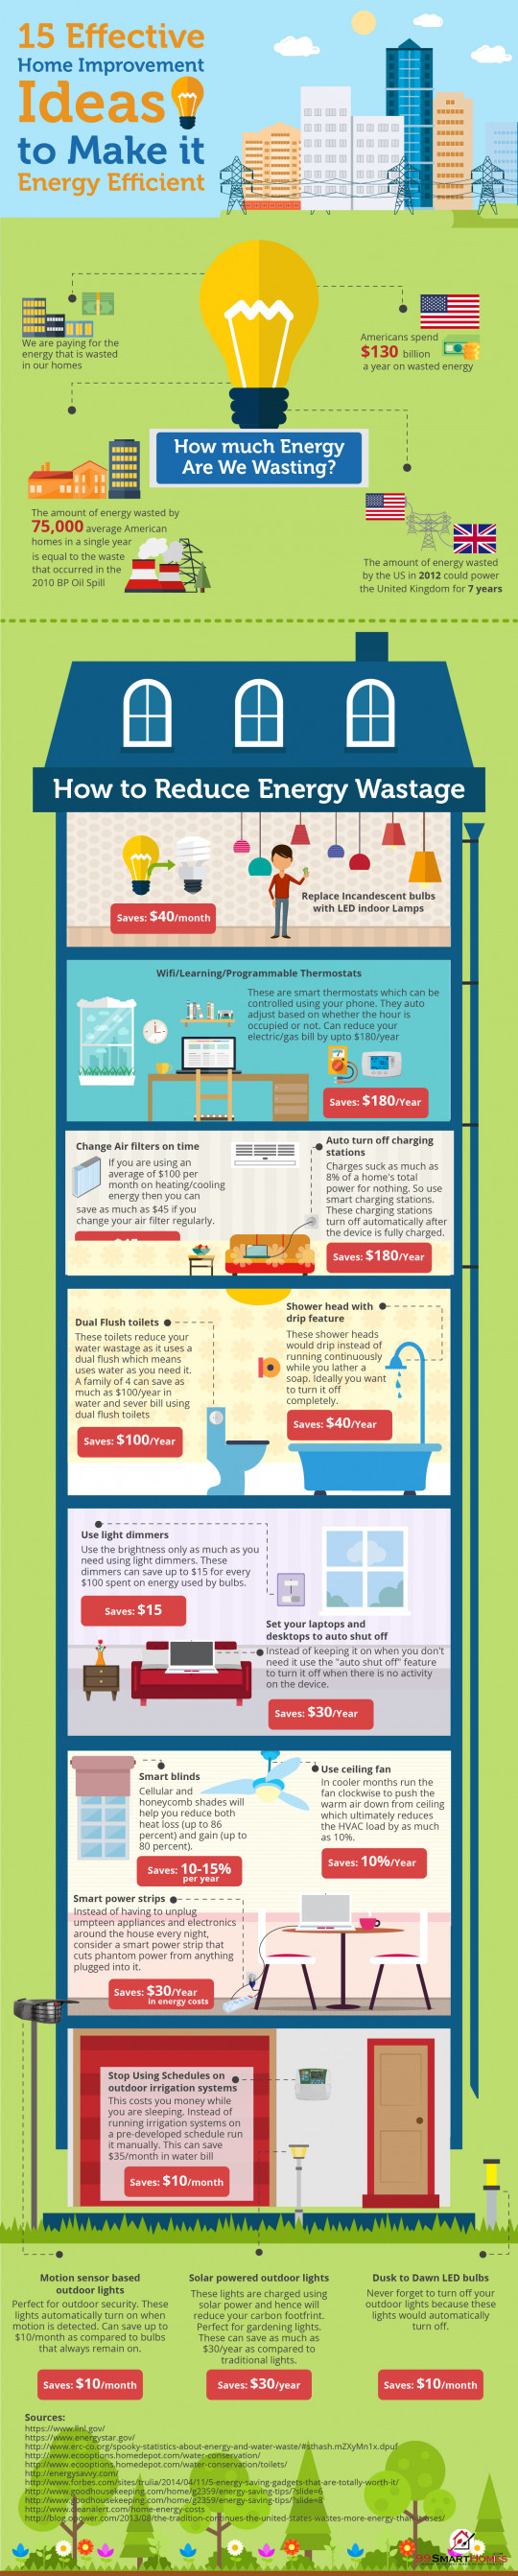 15 Ways to Make your Home Energy Efficient and Reduce Utility Bill